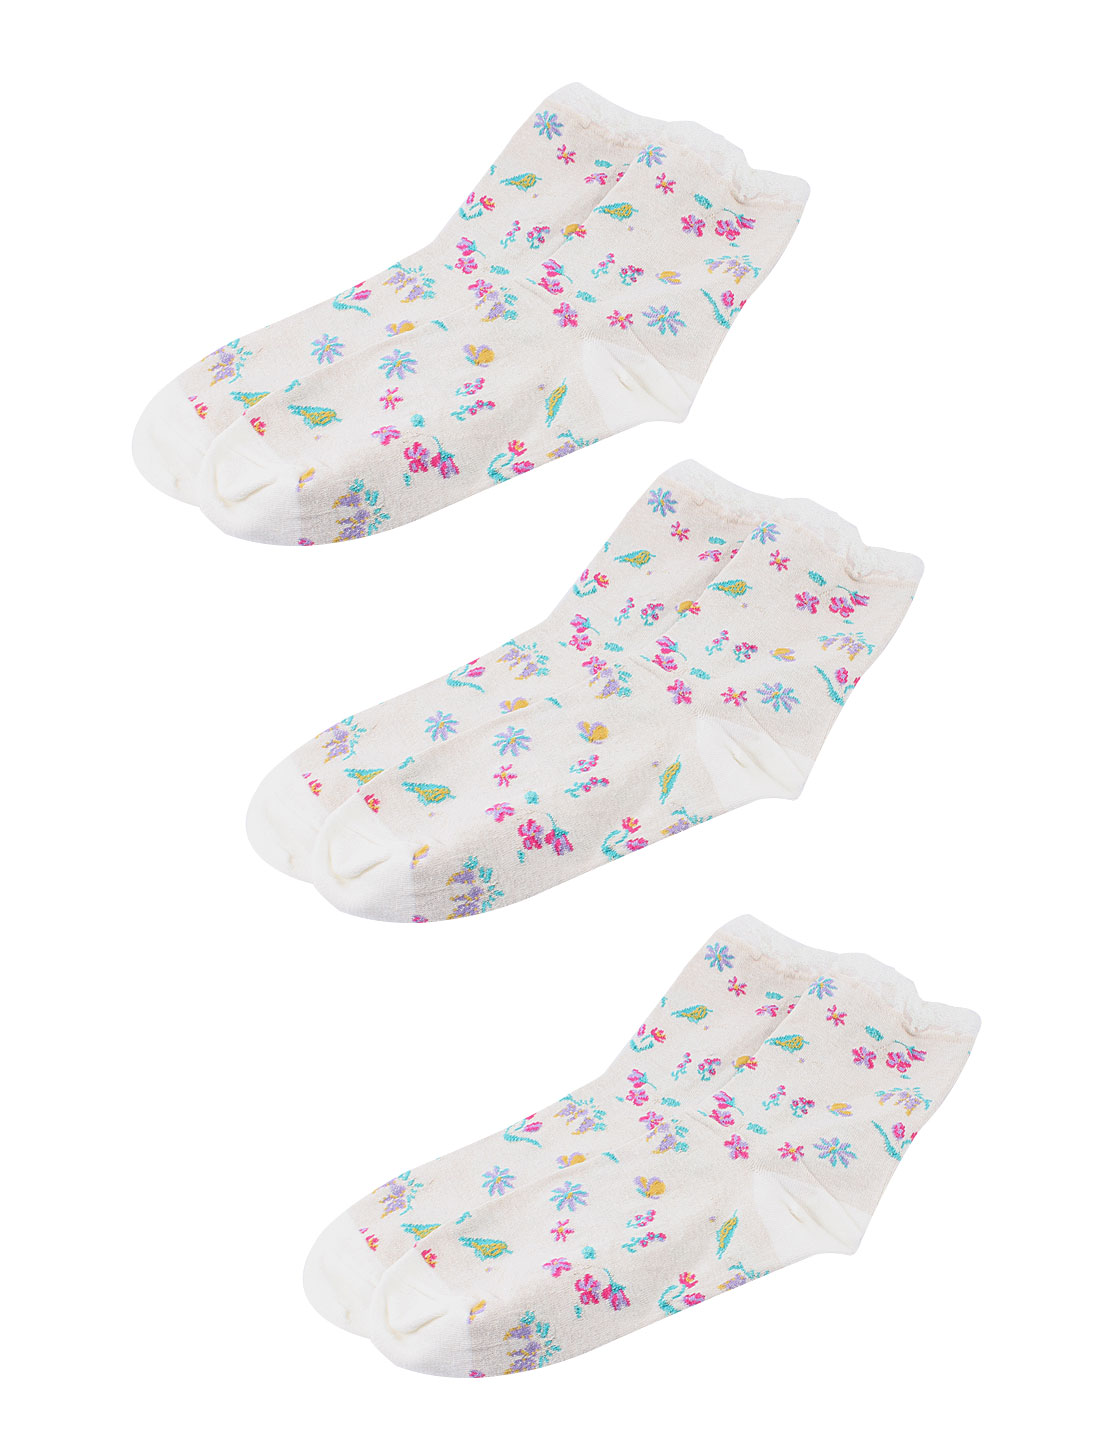 Woman Winter Fall Stretch Flower Bird Pattern Crew Ankle High Sport Casual Socks Light Gray 3 Pairs